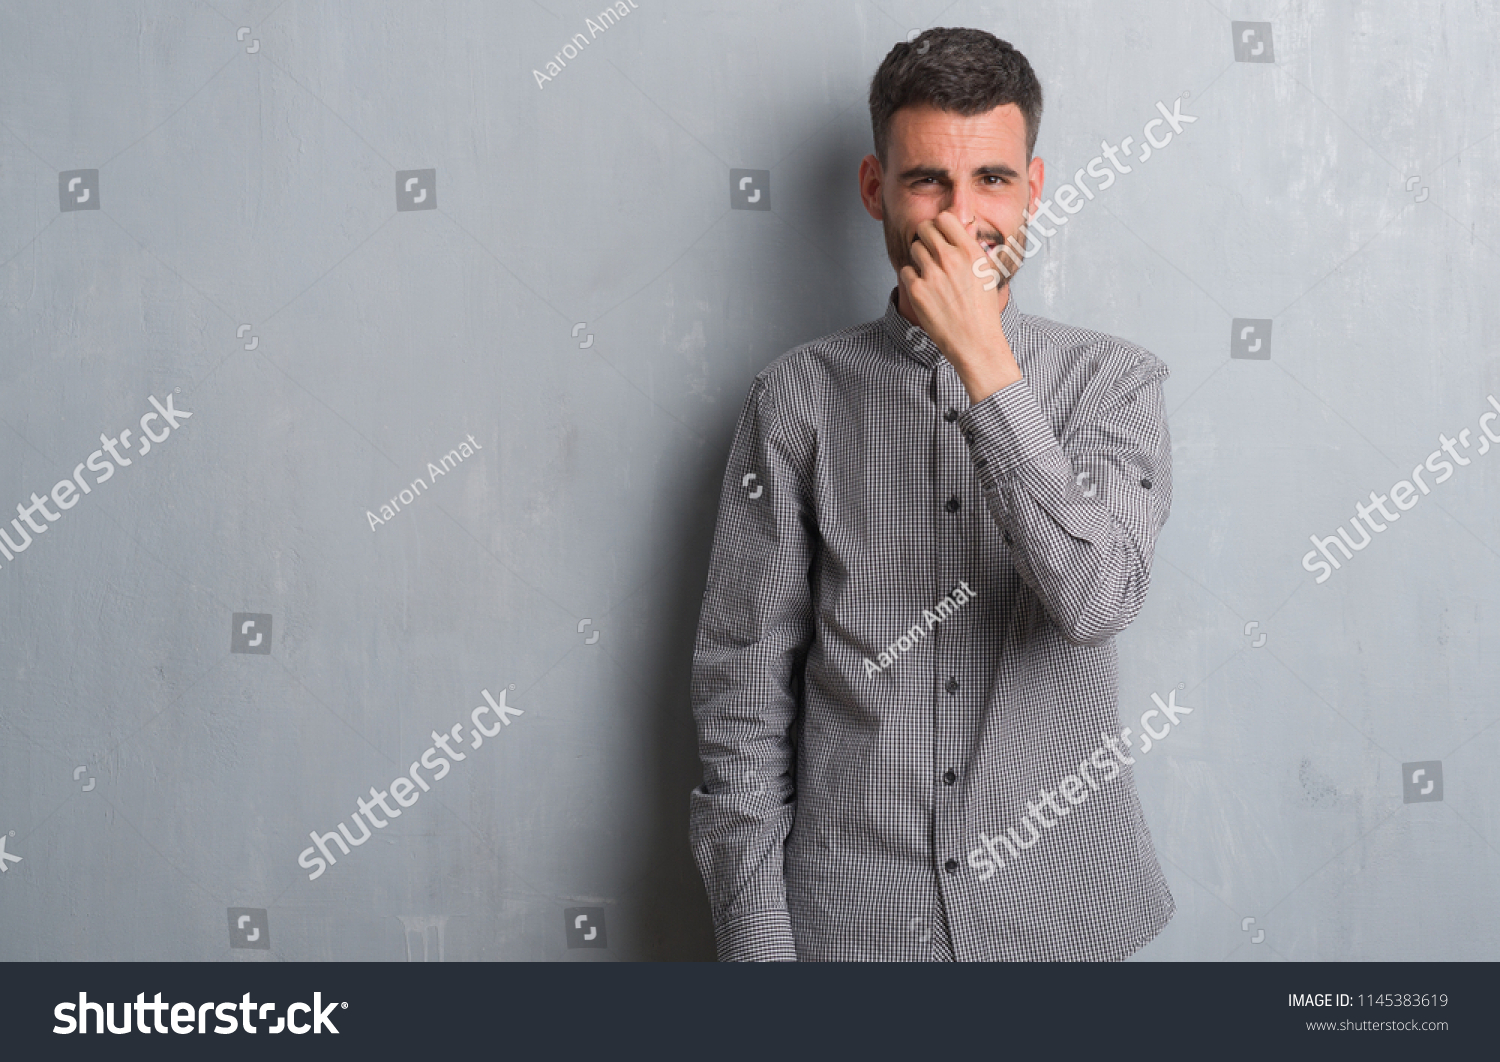 Young adult man standing over grey grunge wall smelling something stinky  and disgusting, intolerable smell